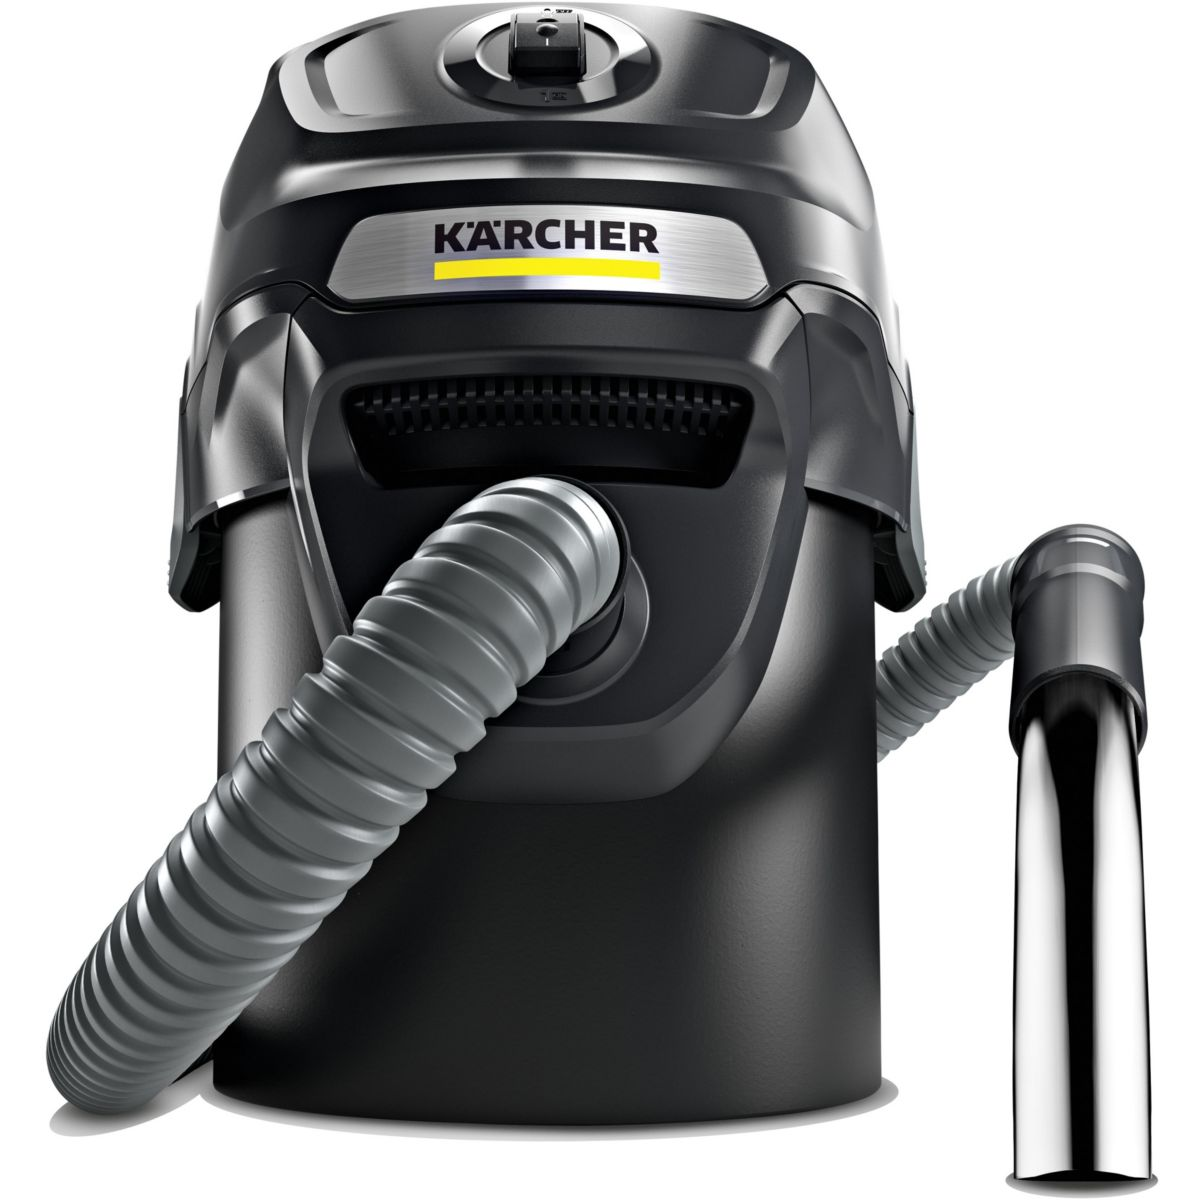 aspirateur karcher achat vente de aspirateur pas cher. Black Bedroom Furniture Sets. Home Design Ideas